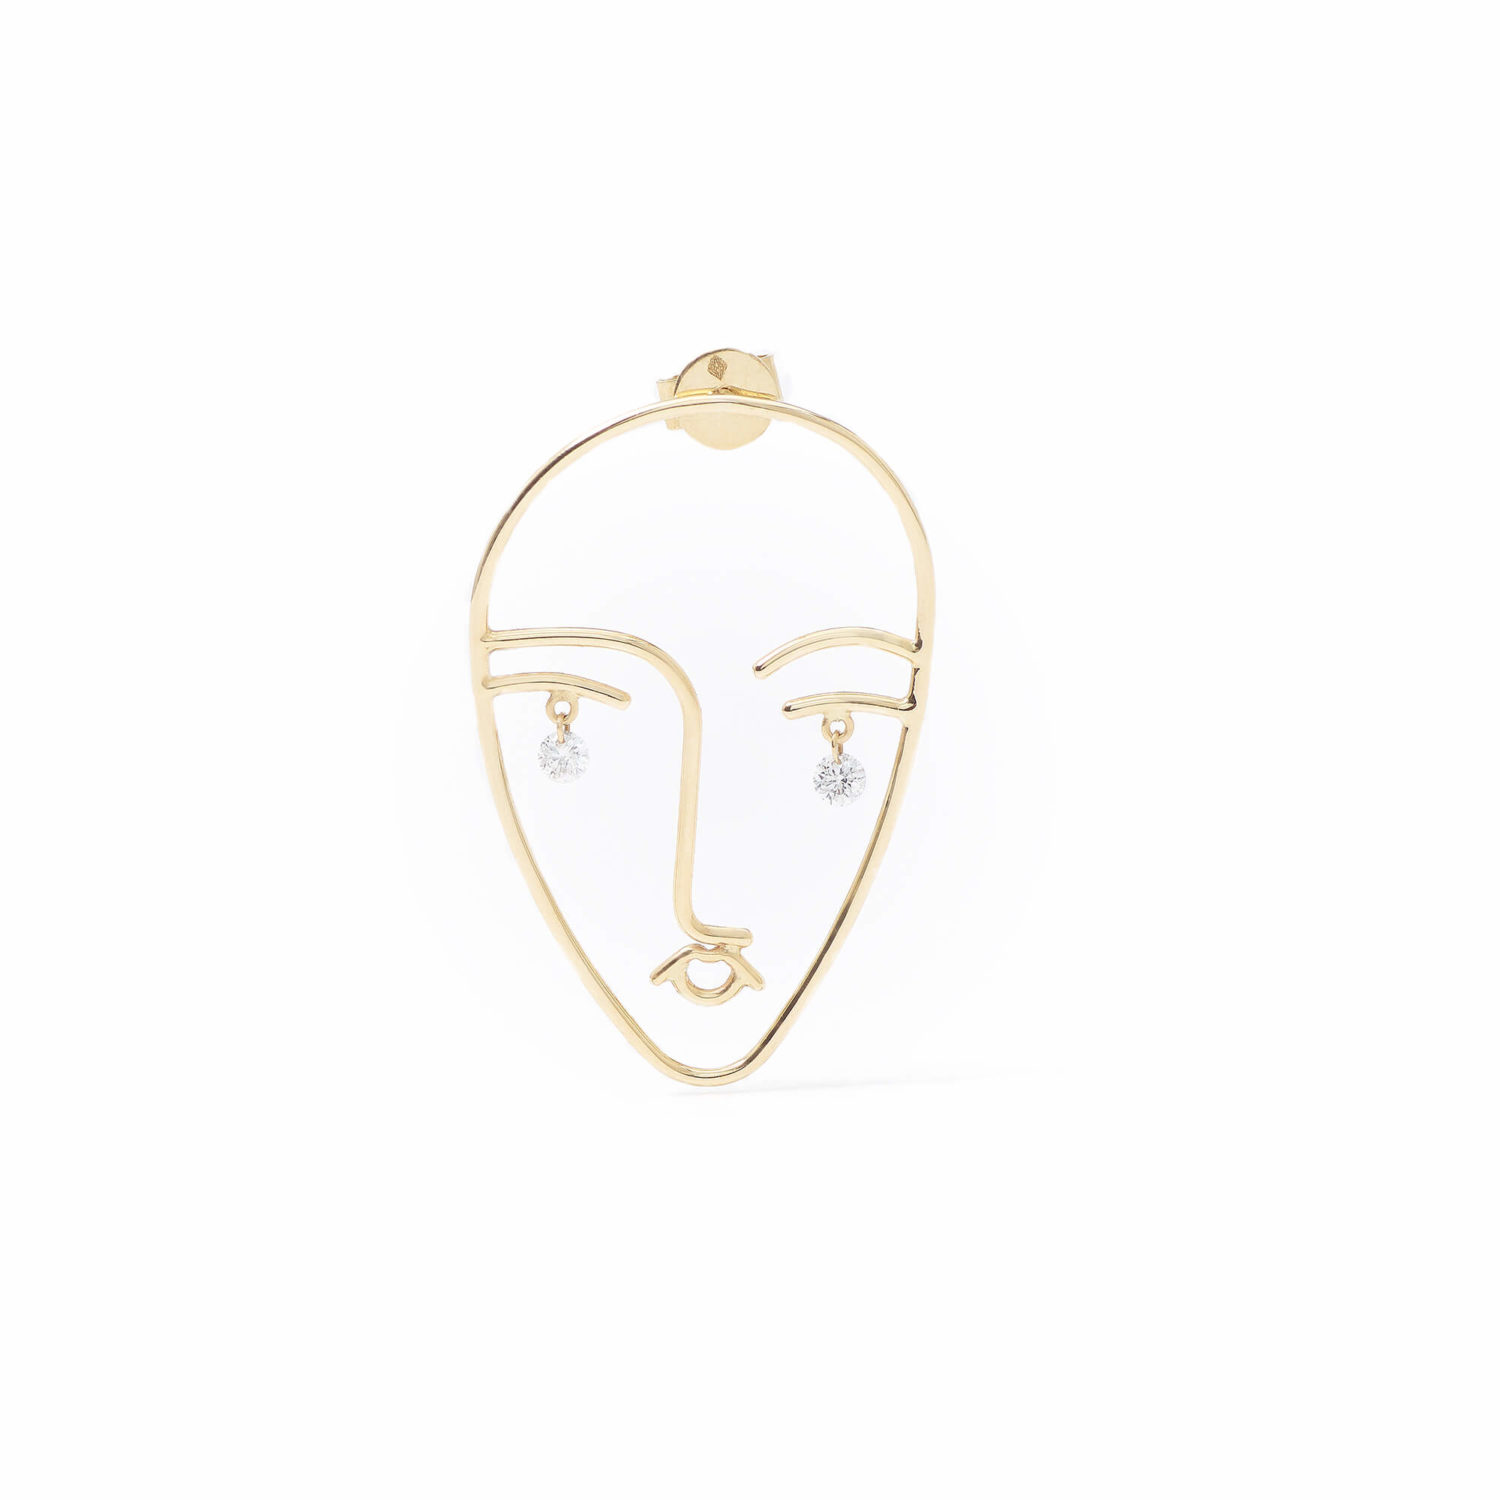 BOUCLE D'OREILLE MATISSE PERSEE